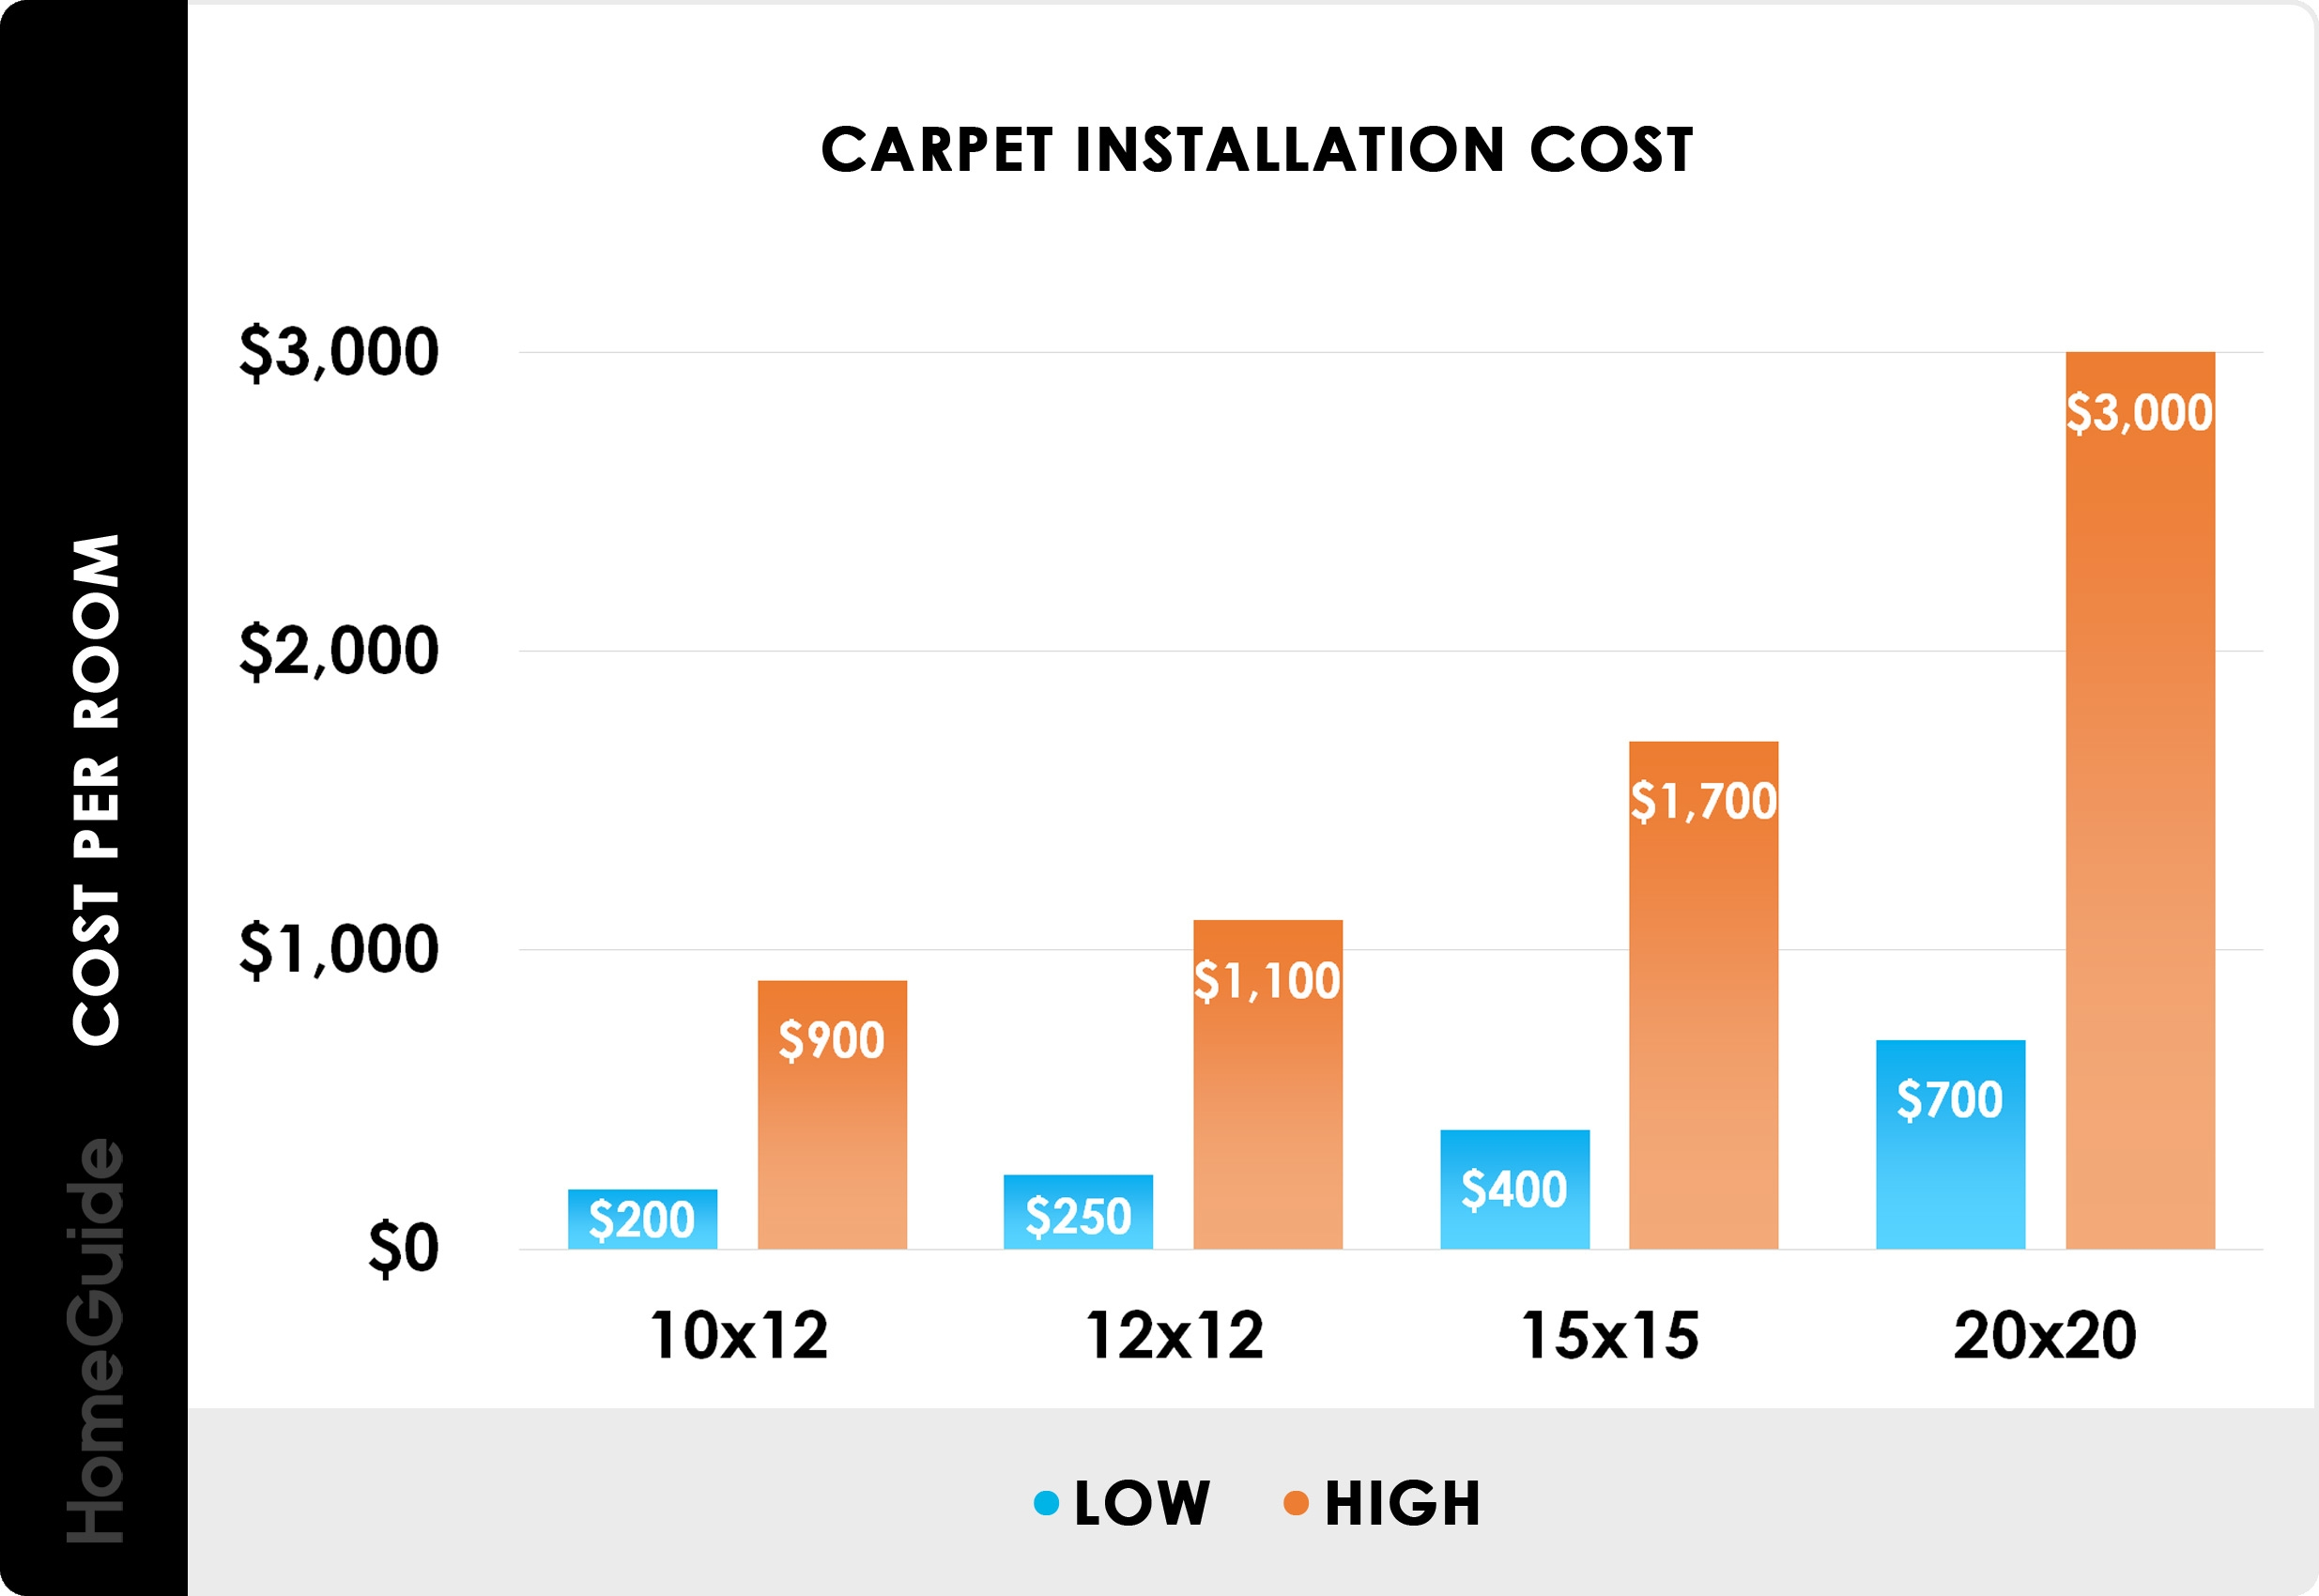 2020 Carpet Installation Cost Replacement Cost Per Square Foot   Average Cost To Carpet Stairs   Measure   Carpet Runner   Handrail   Stair Treads   Carpet Installation Cost